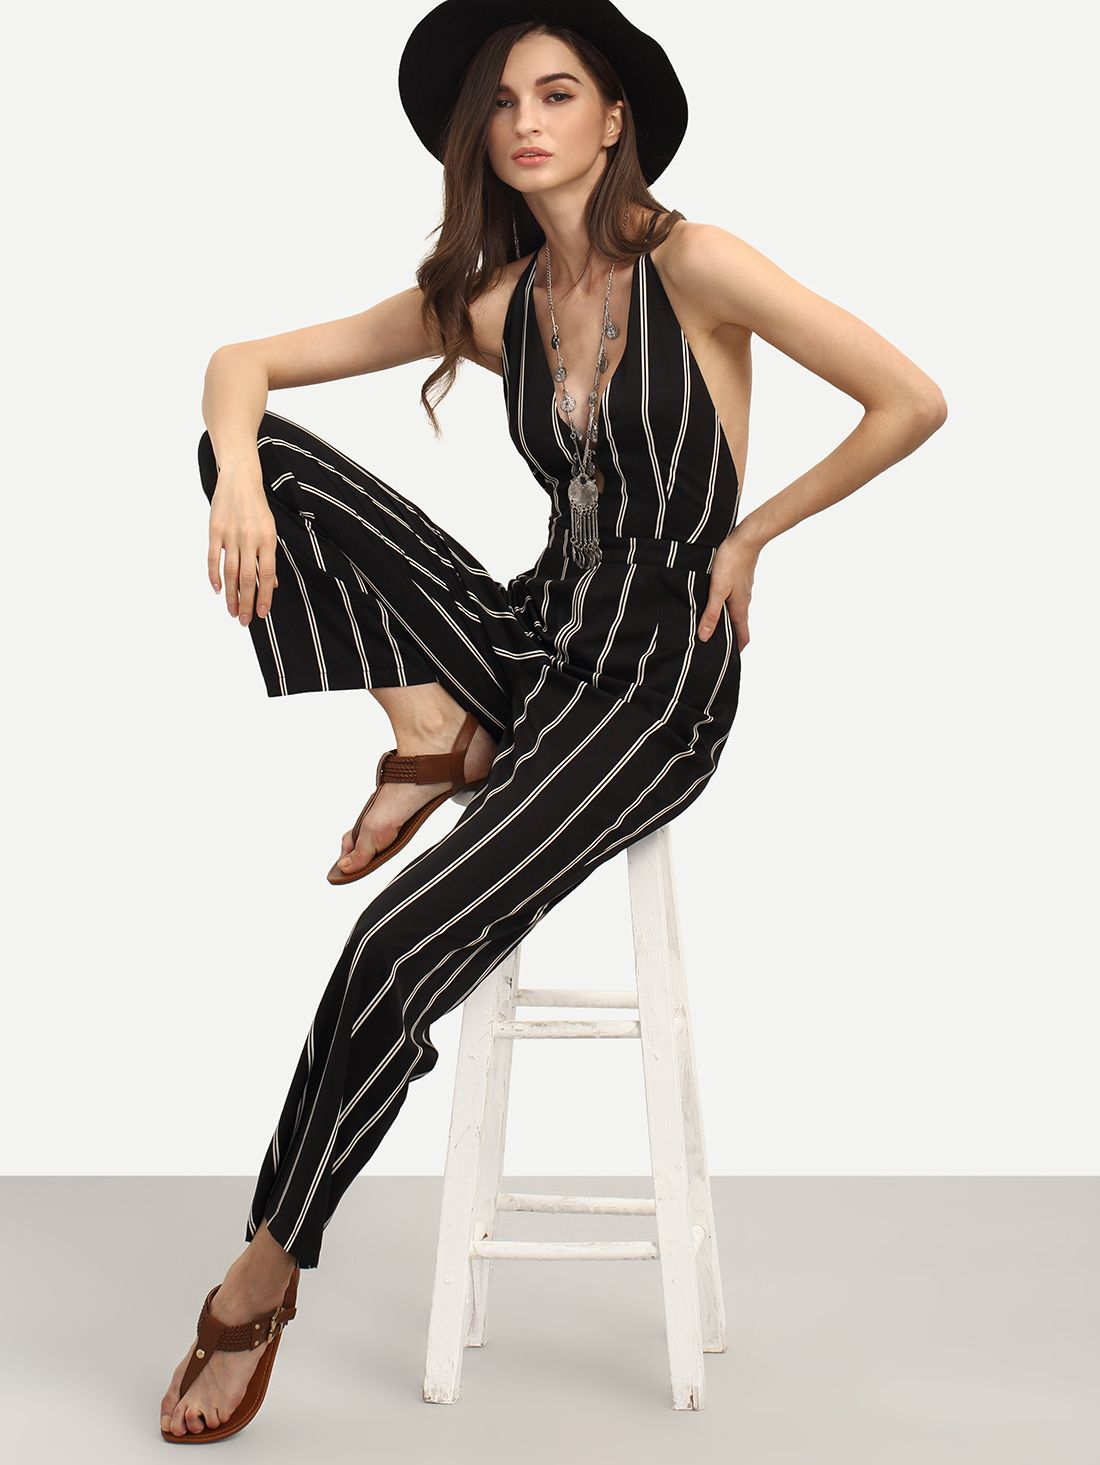 e824fc6c5f Shop Black And White Striped Sleeveless V Neck Jumpsuit Online Shop Black  Sleeveless Cut Out Backless · SheIn ...